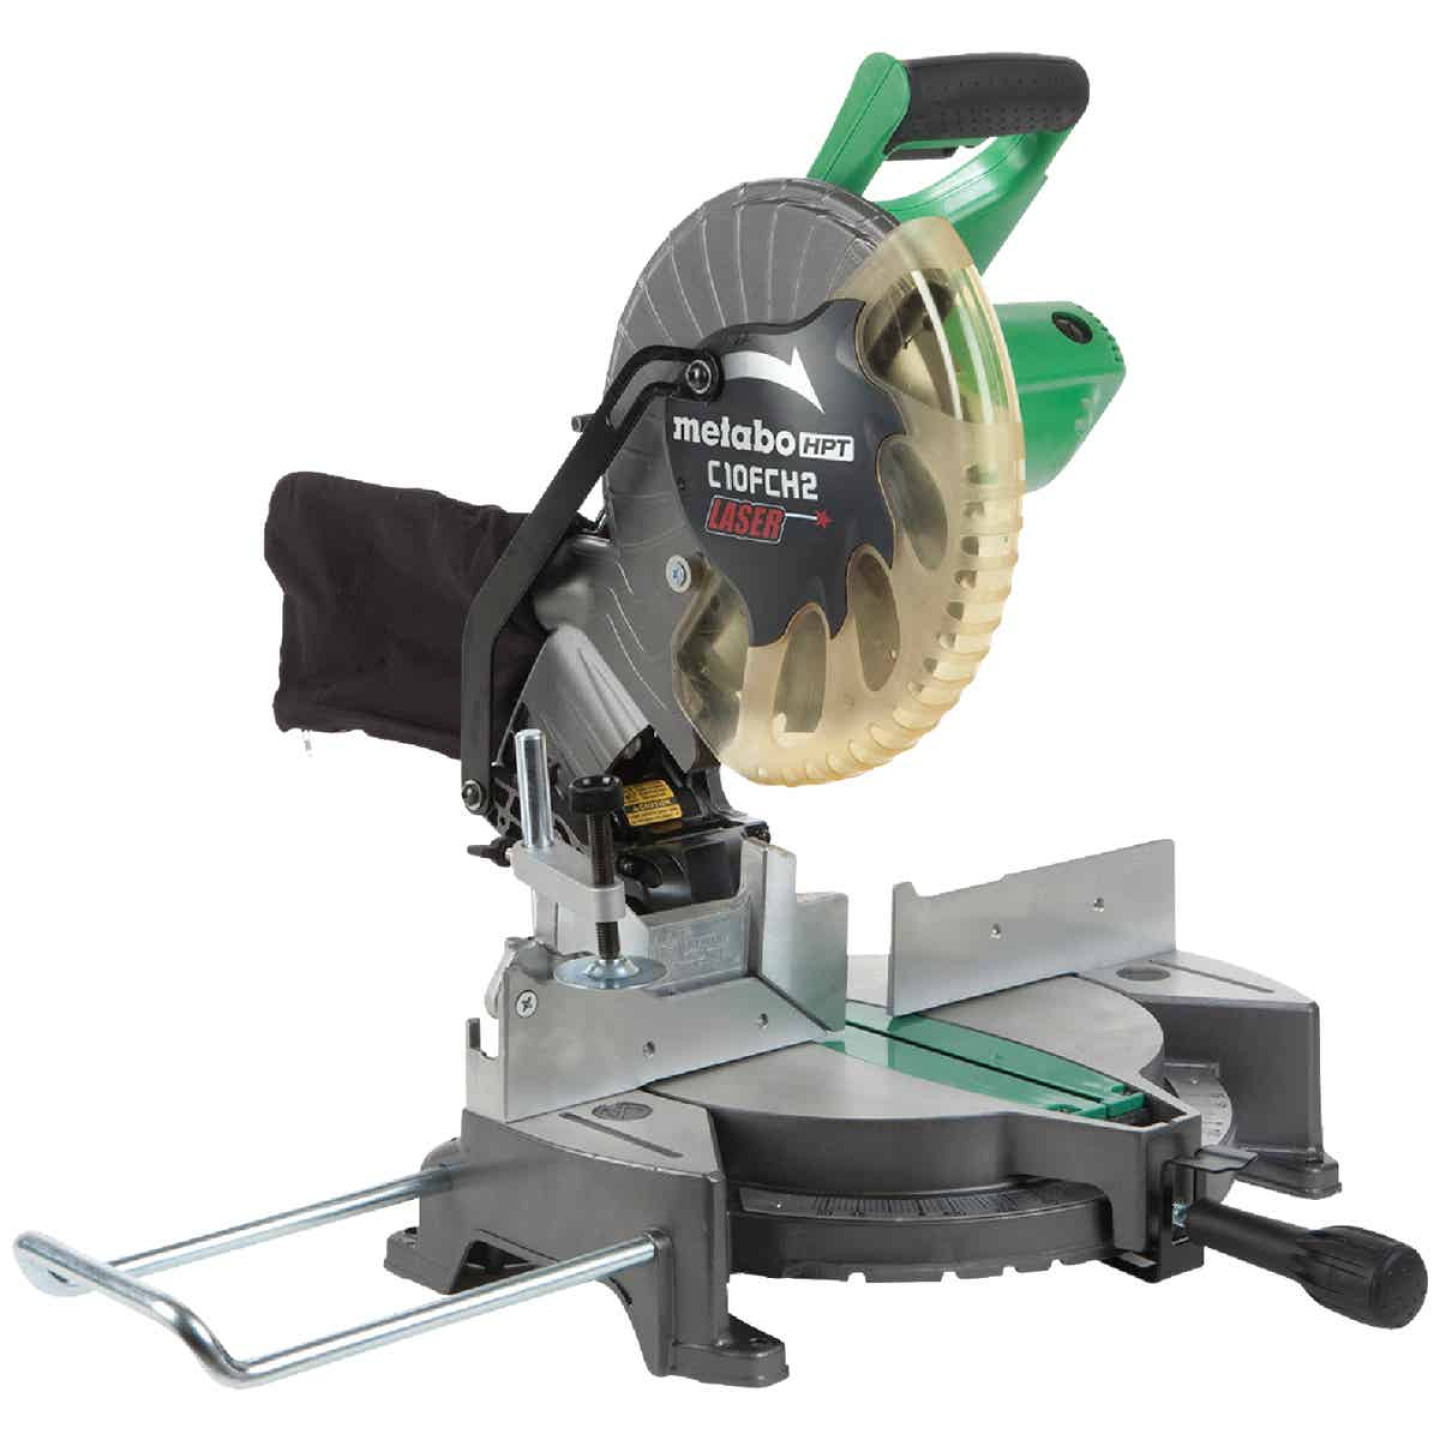 Metabo HPT 10 In. 15-Amp Compound Miter Saw with Laser Image 1